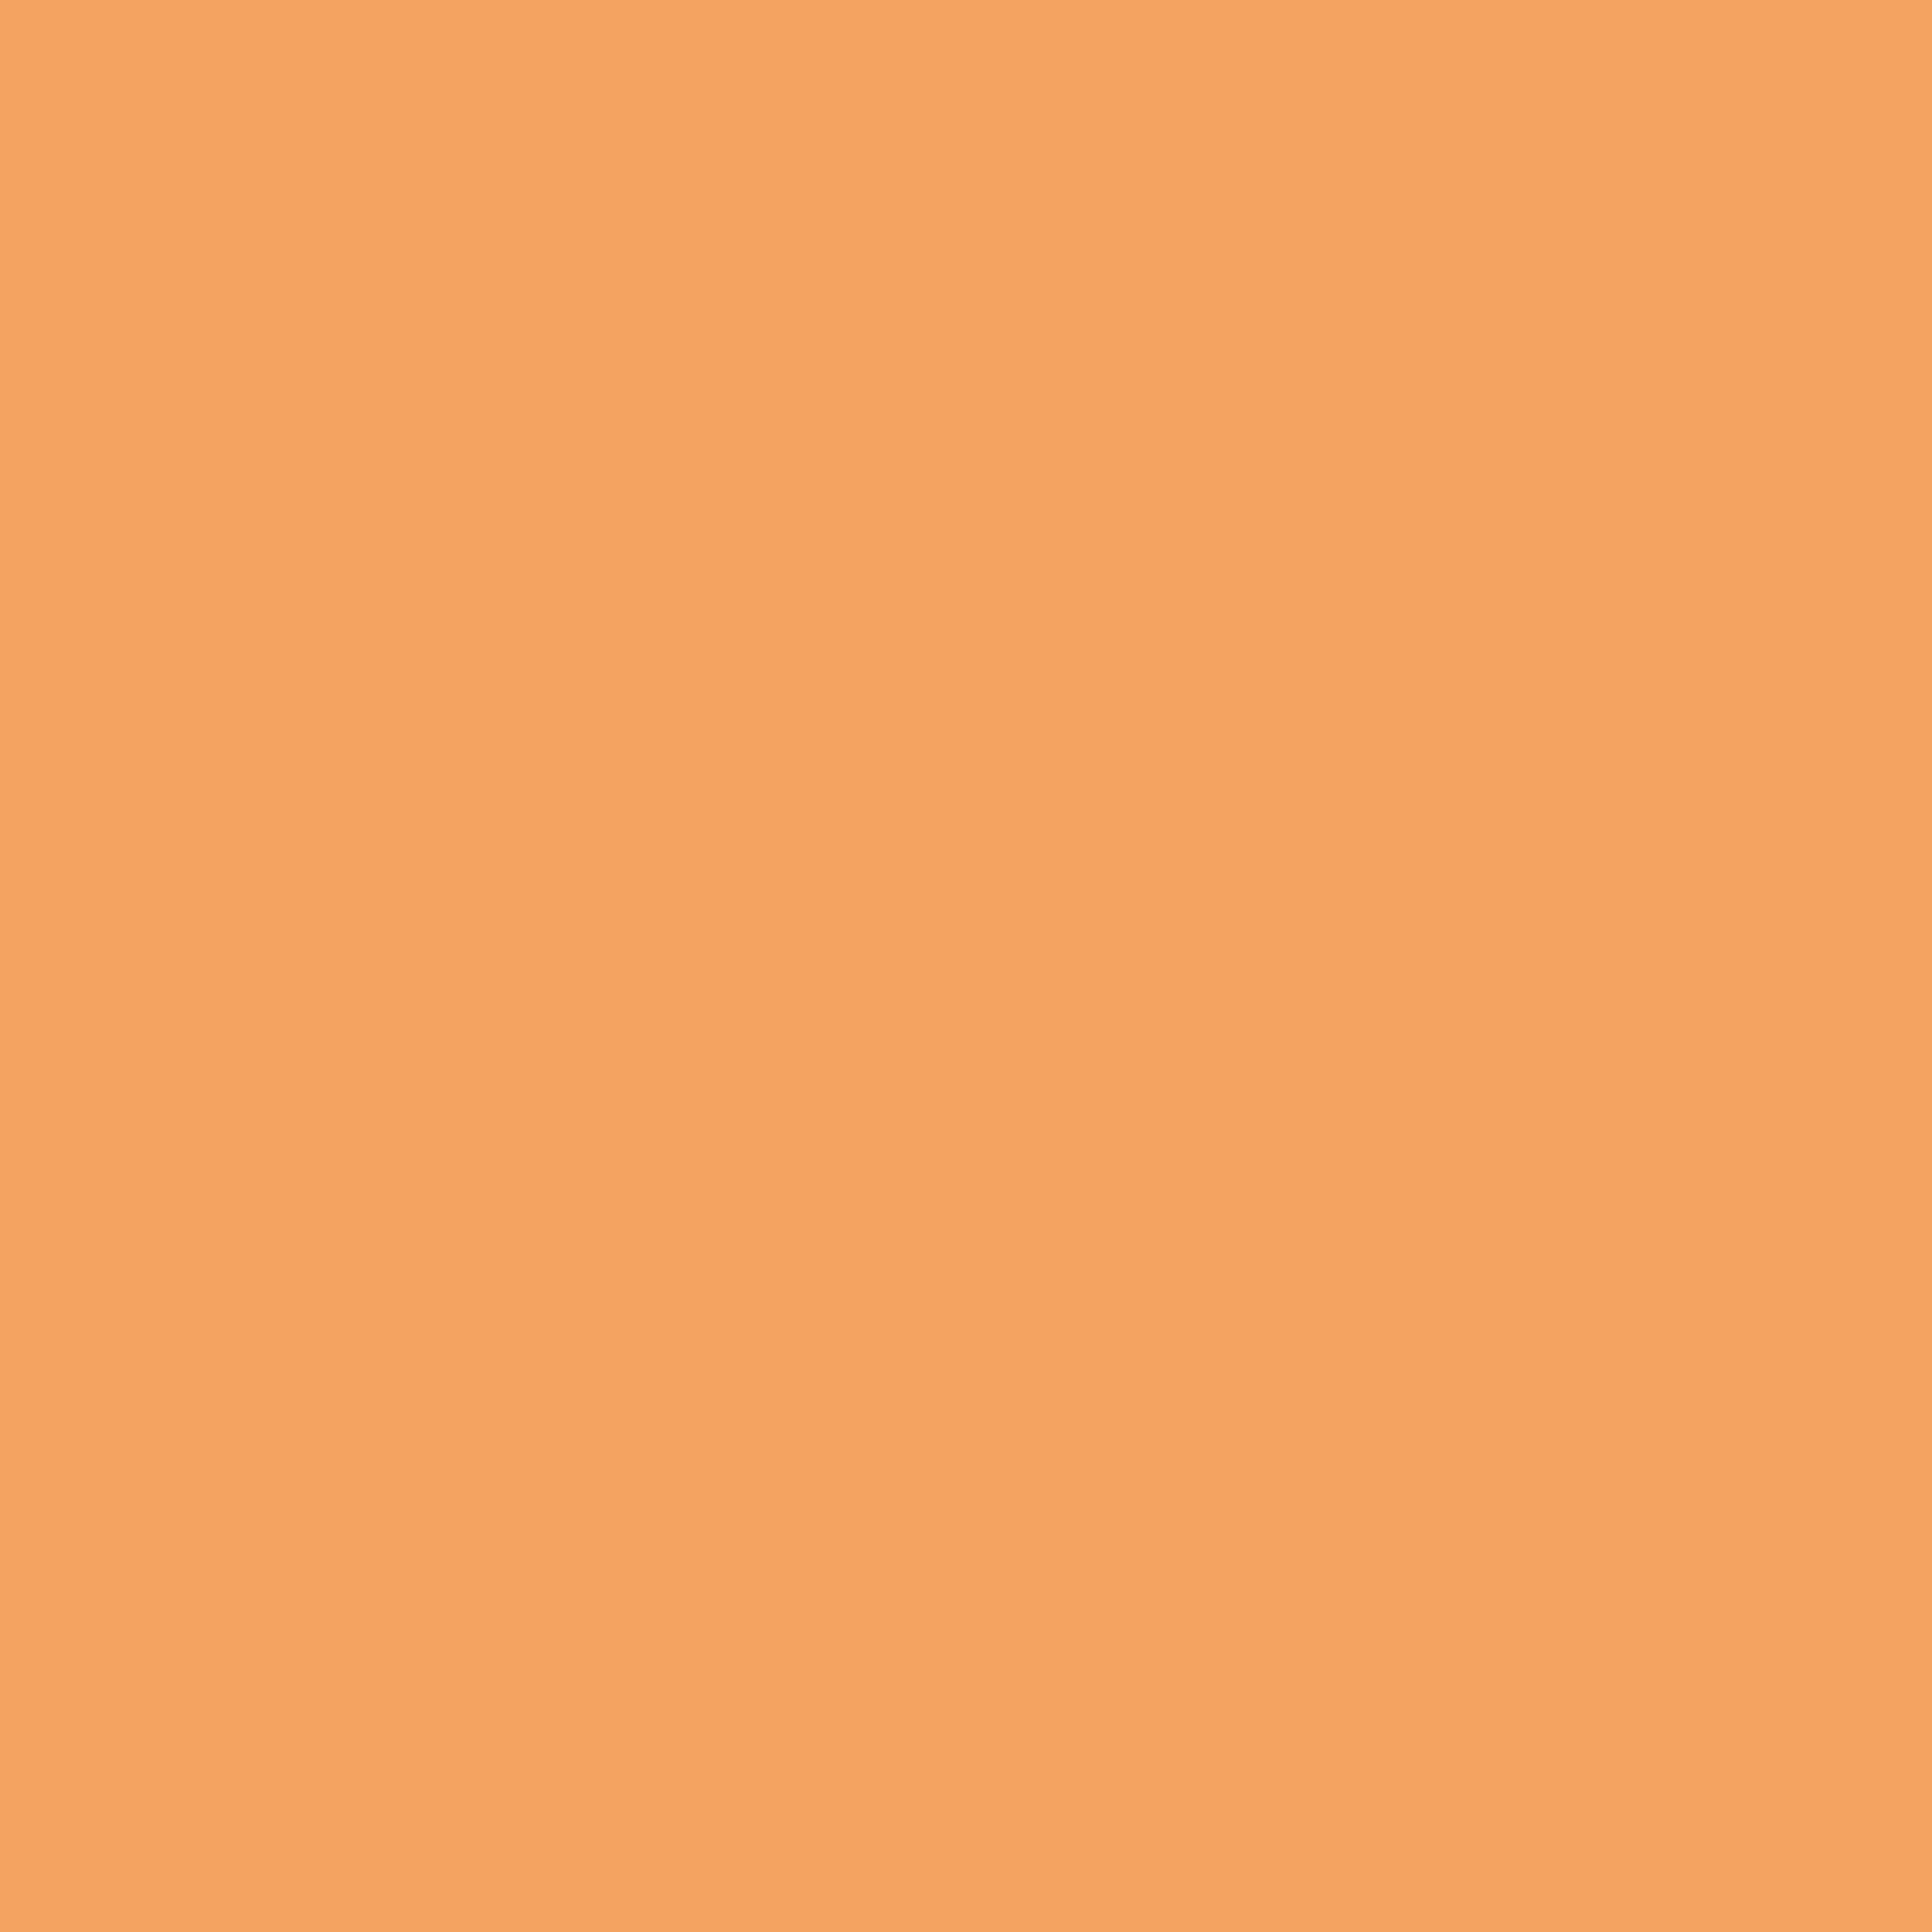 2732x2732 Sandy Brown Solid Color Background